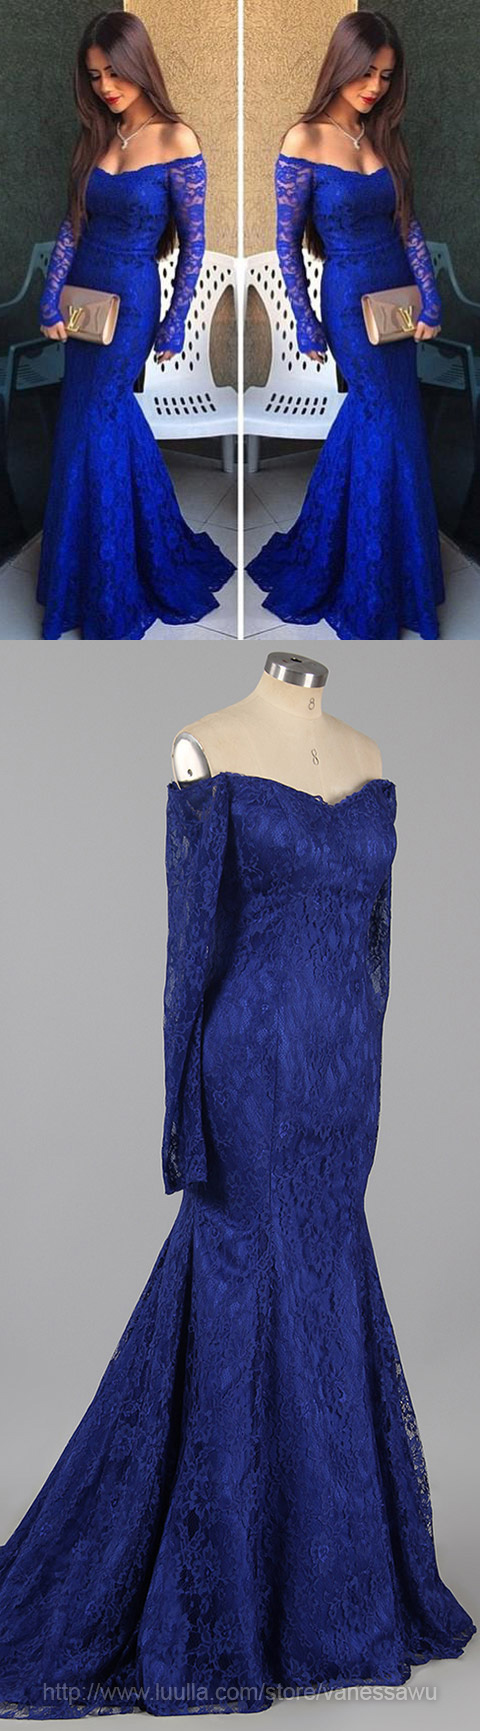 Royal Blue Lace Prom Dress, Simple Off-the-shoulder Prom Dresses with Long Sleeves, Mermaid Prom Dress, Long Formal Dress, Sexy Evening Party Gowns